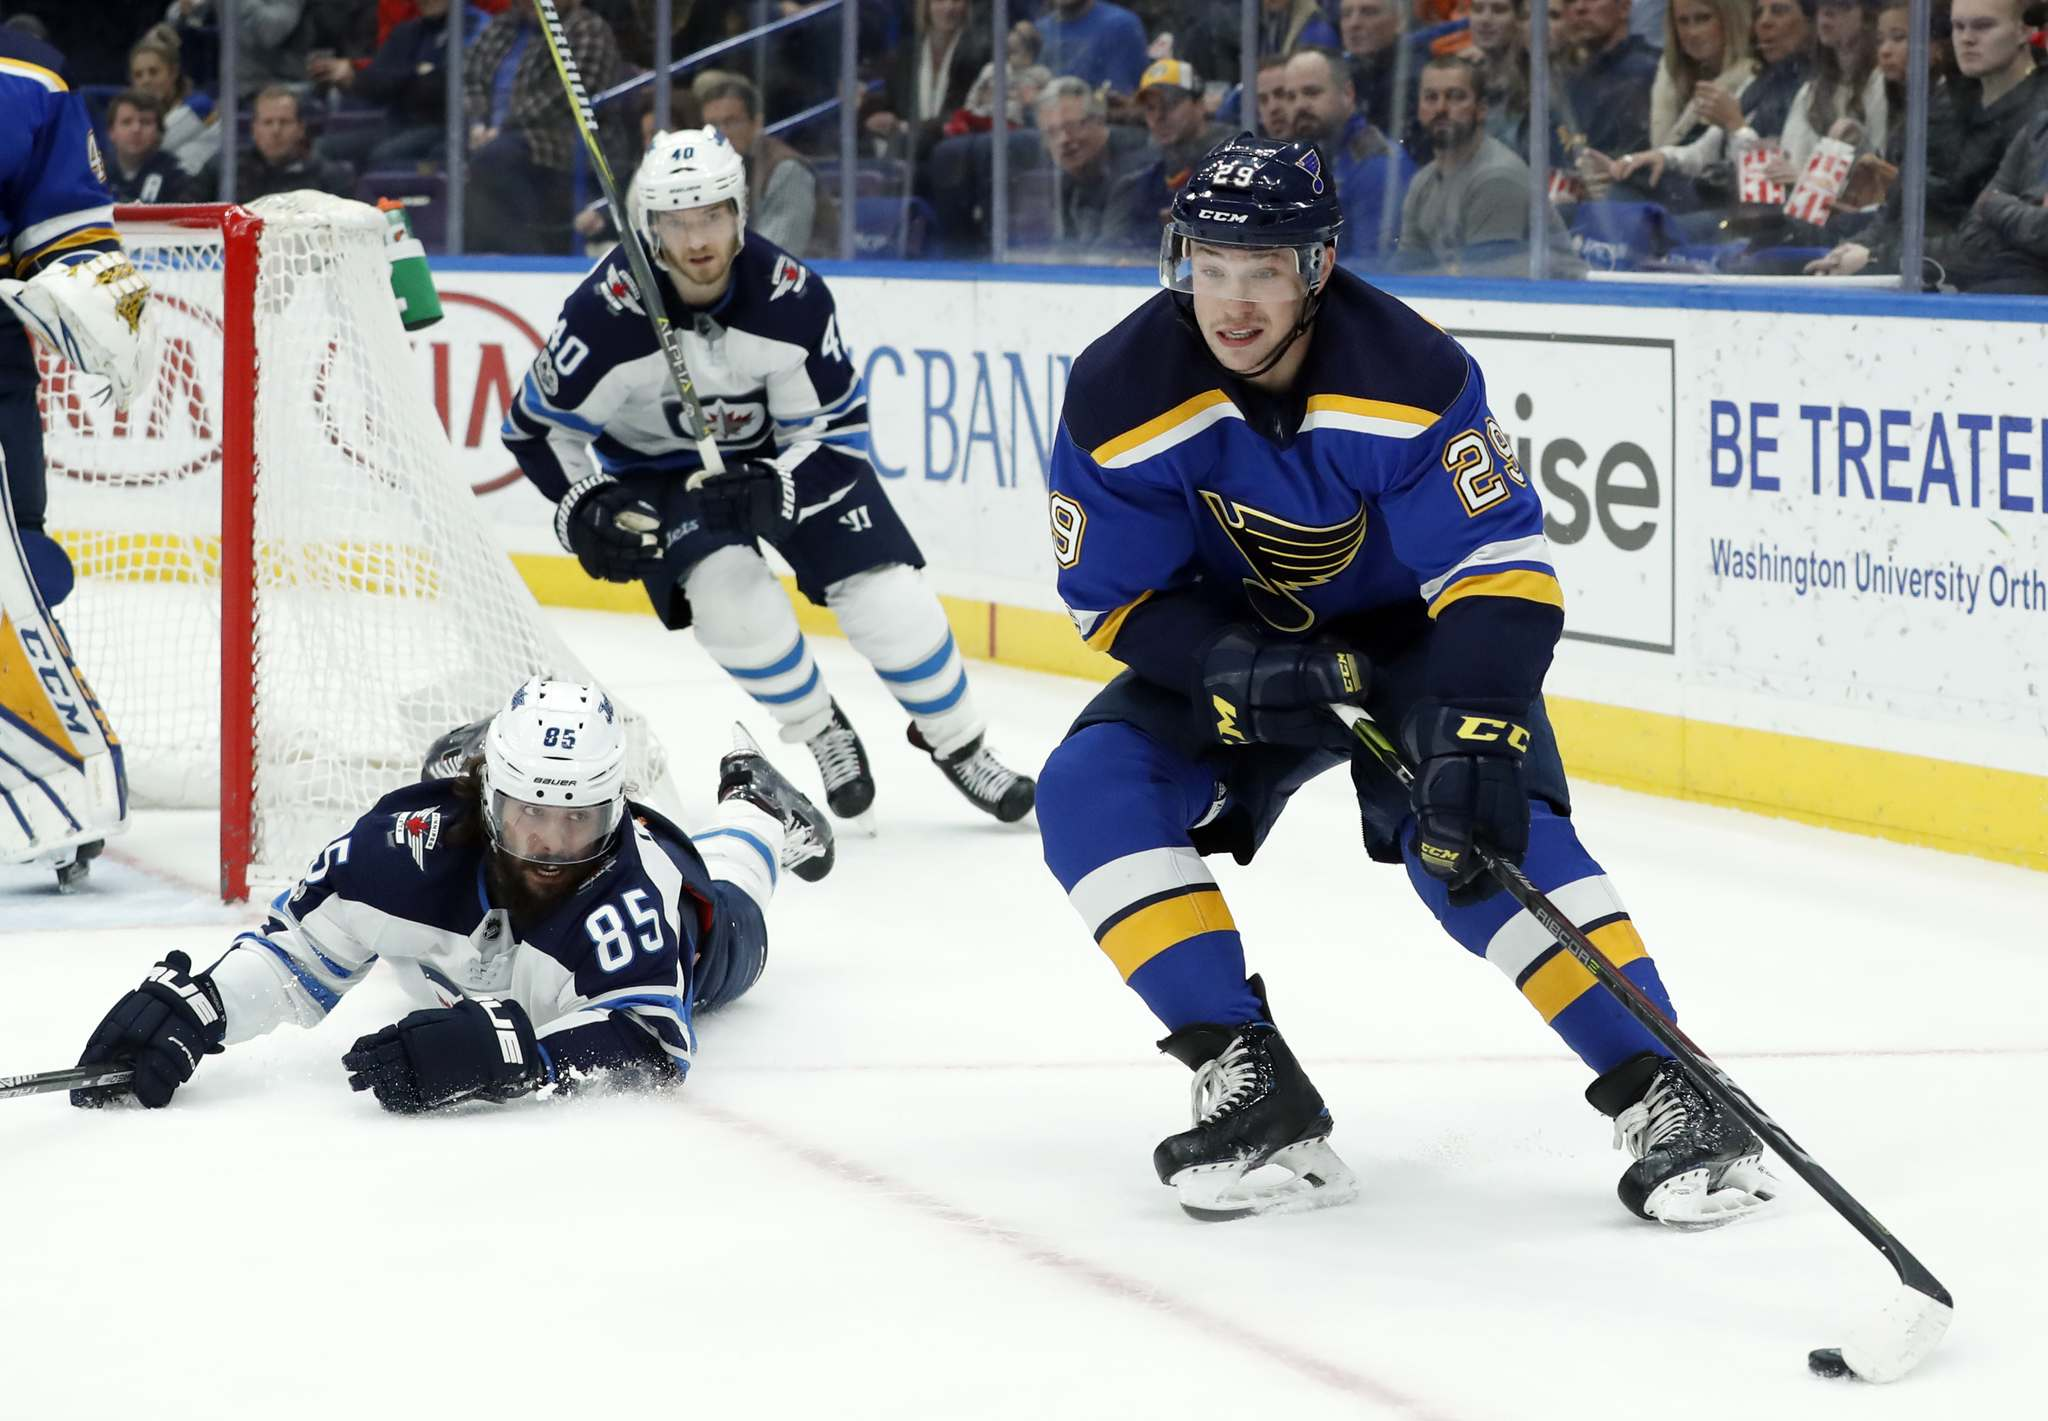 Blues call up defenseman Alex Pietrangelo from injury